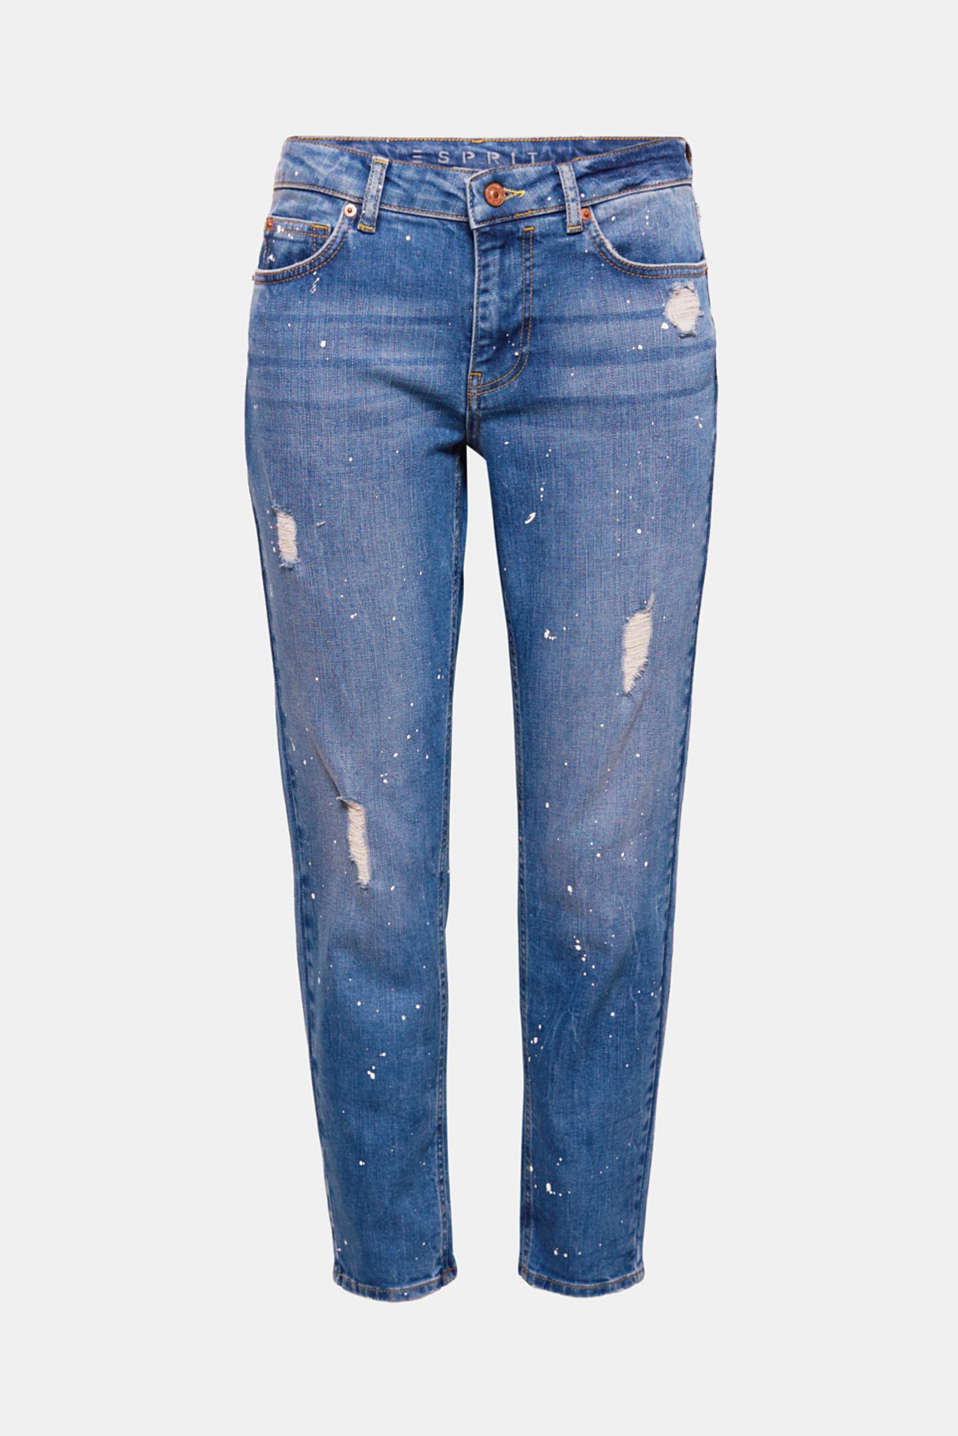 Distressed effects, the casual boyfriend cut and positioned flecks of colour make these jeans a highlight!